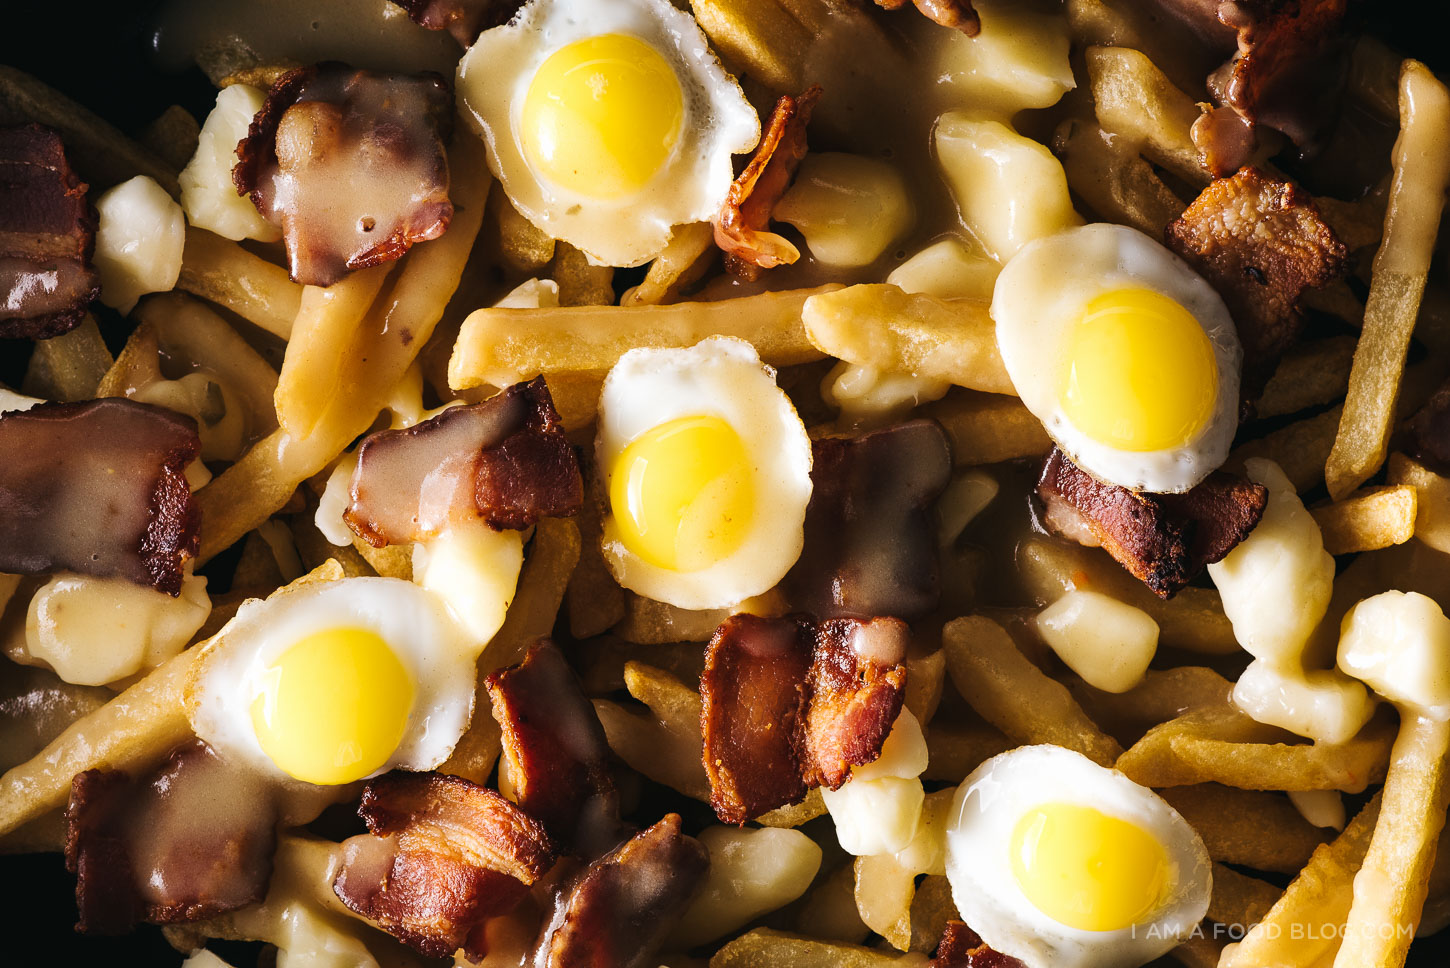 bacon and egg breakfast poutine - www.iamafoodblog.com